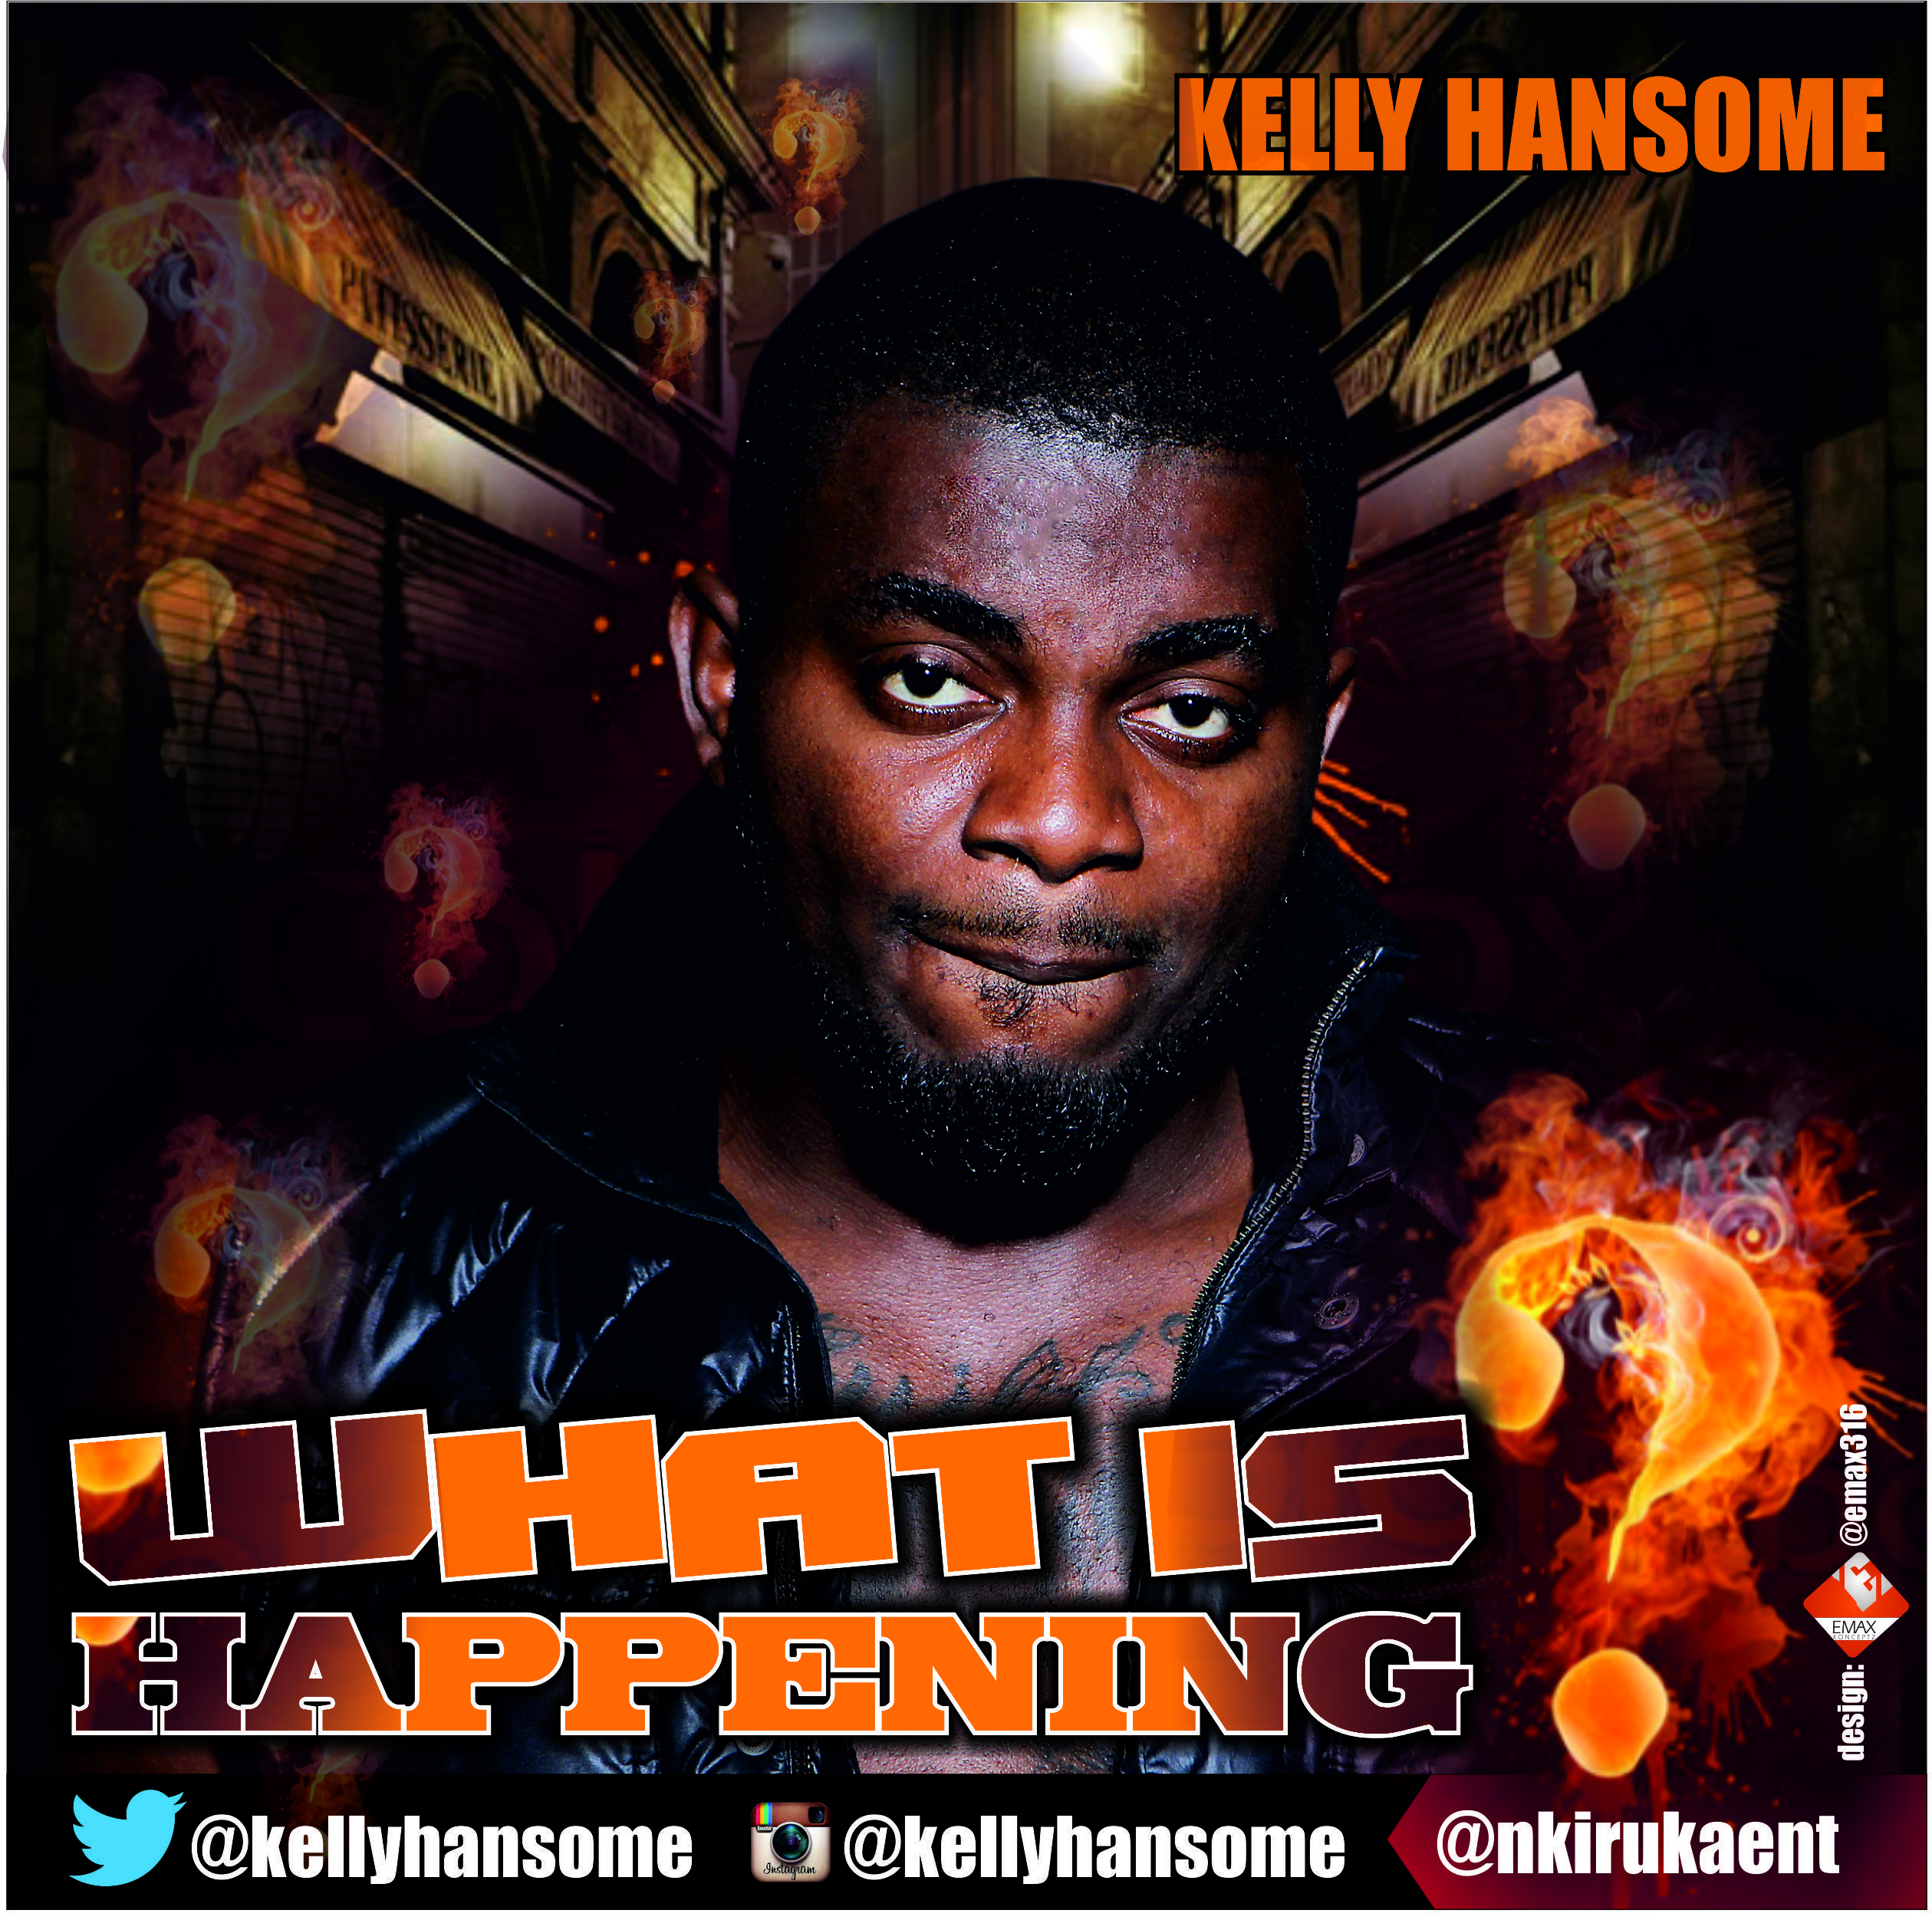 Kelly Hansome - What is Happening